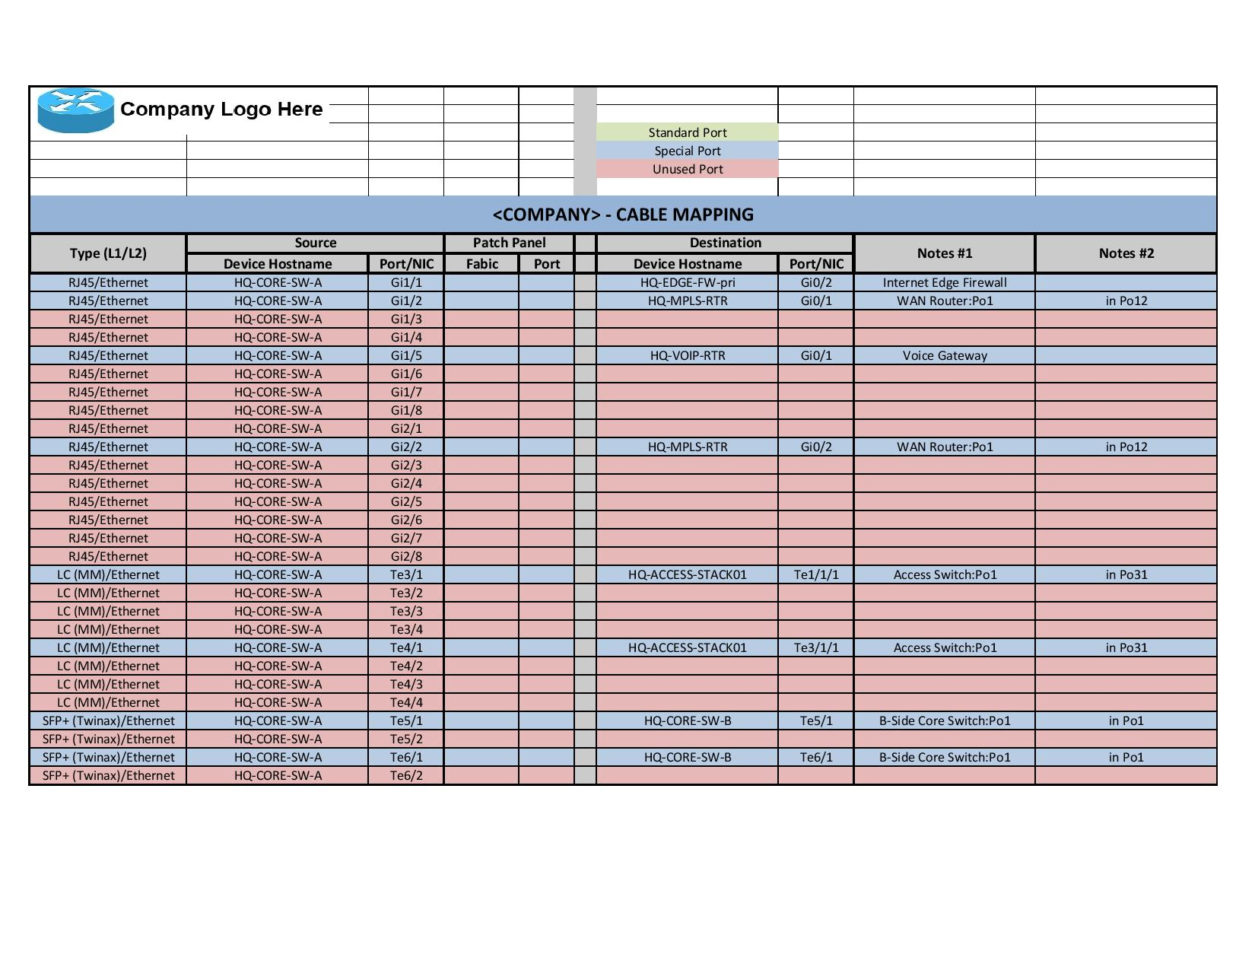 Patch Management Tracking Spreadsheet Within Network Documentation Series: Port Mapping